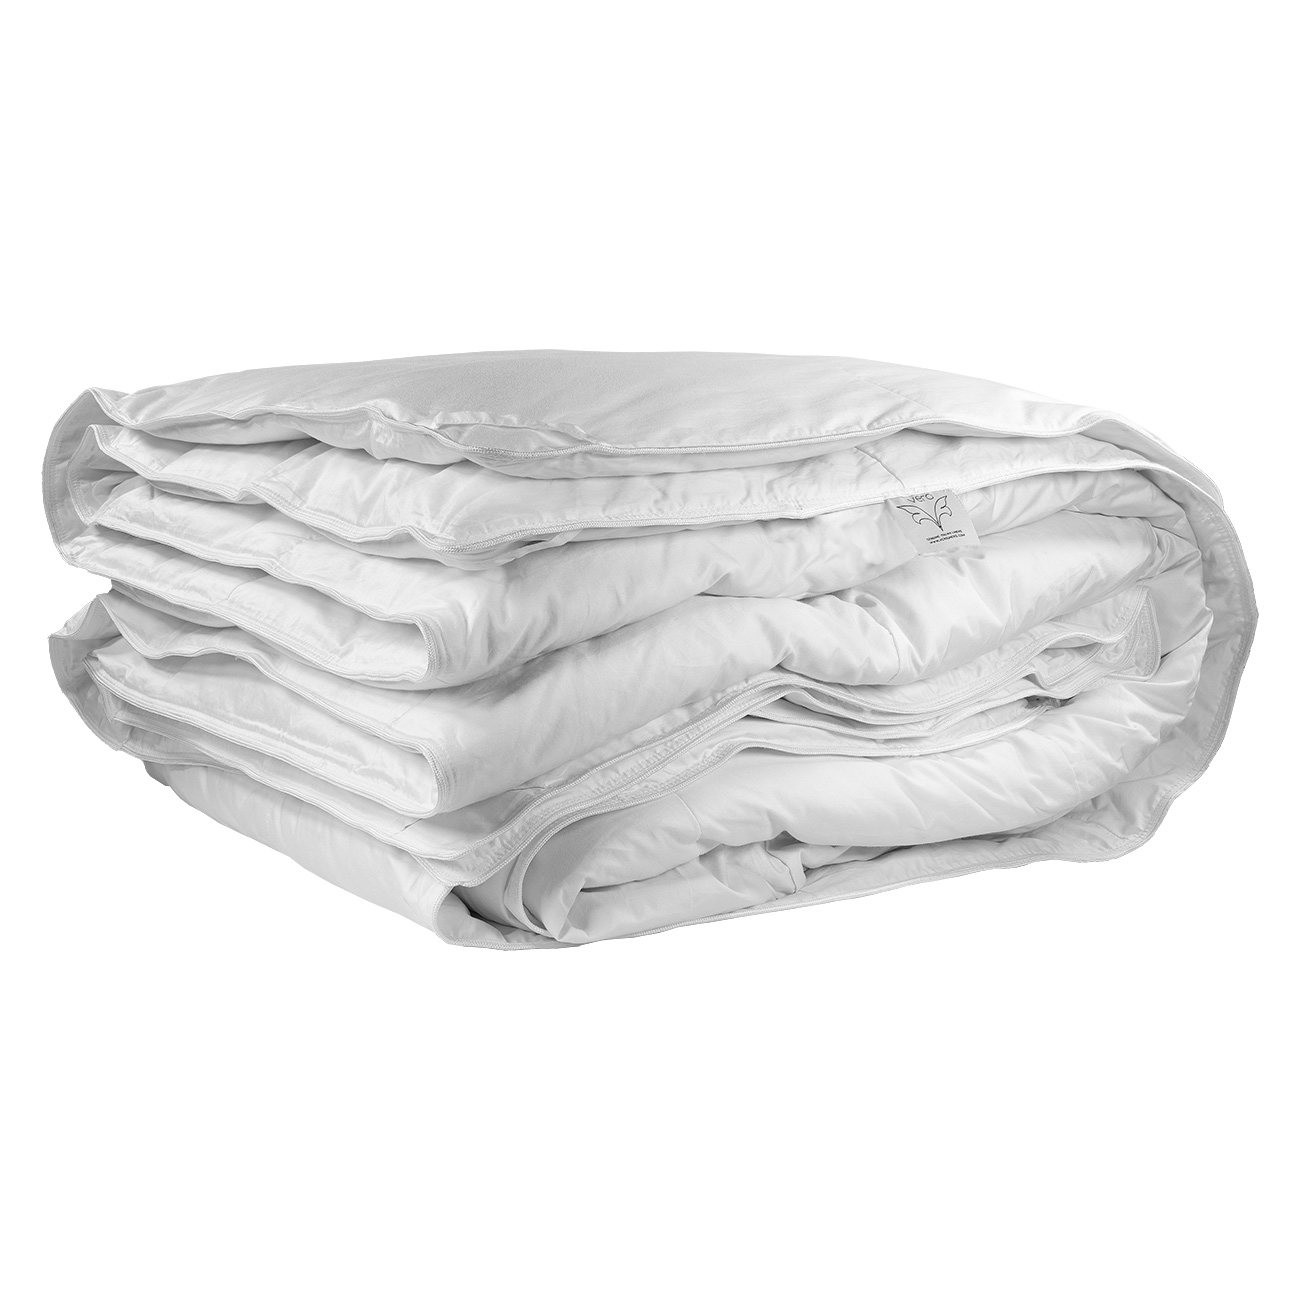 Luxury Baffle Box Down Alternative Comforters for Oversized Beds made to fit your Alaskan King, Wyoming King, Texas King, or Vermont King sized bed.